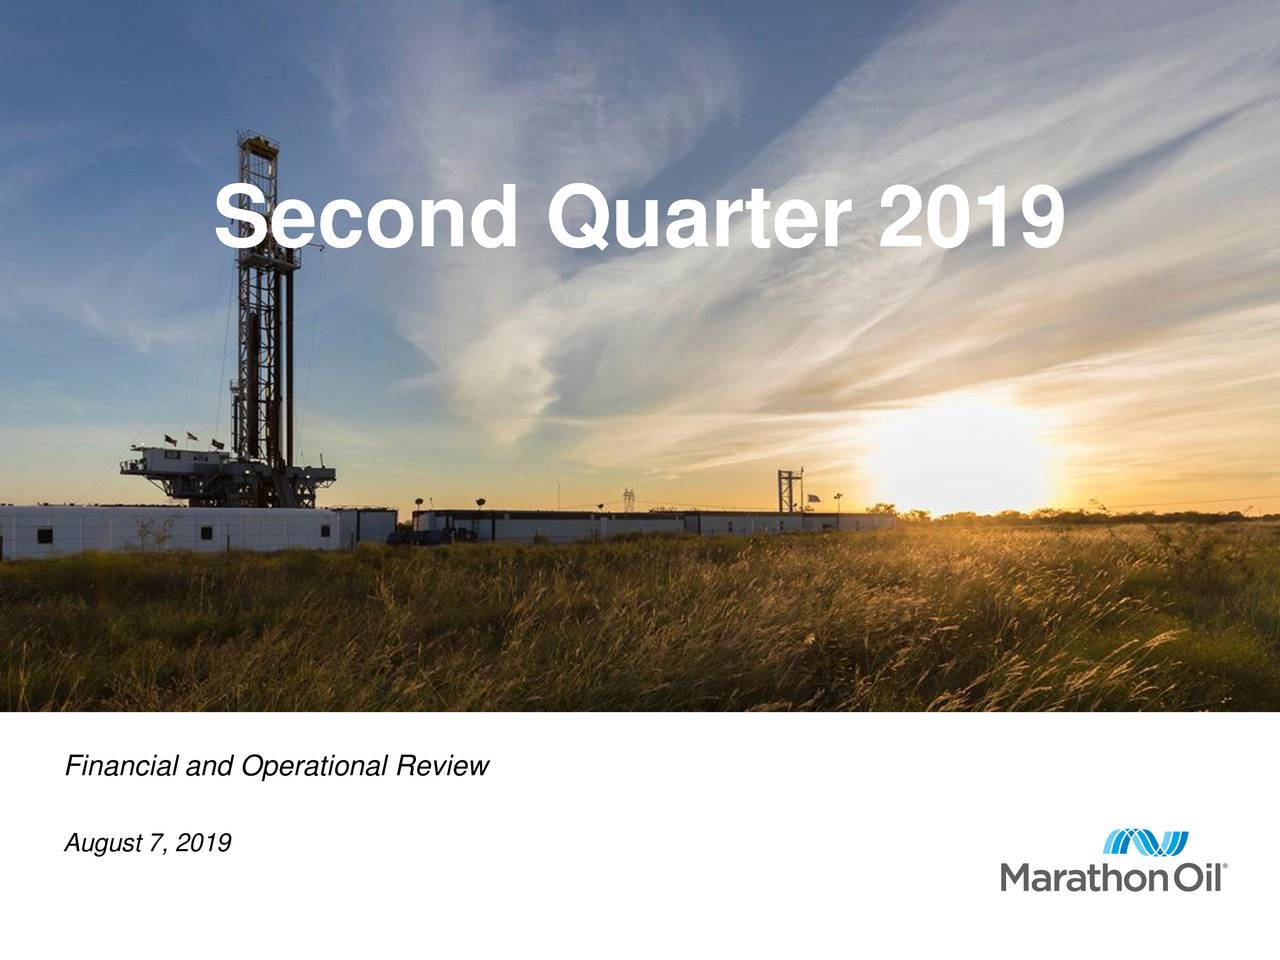 Second Quarter 2019